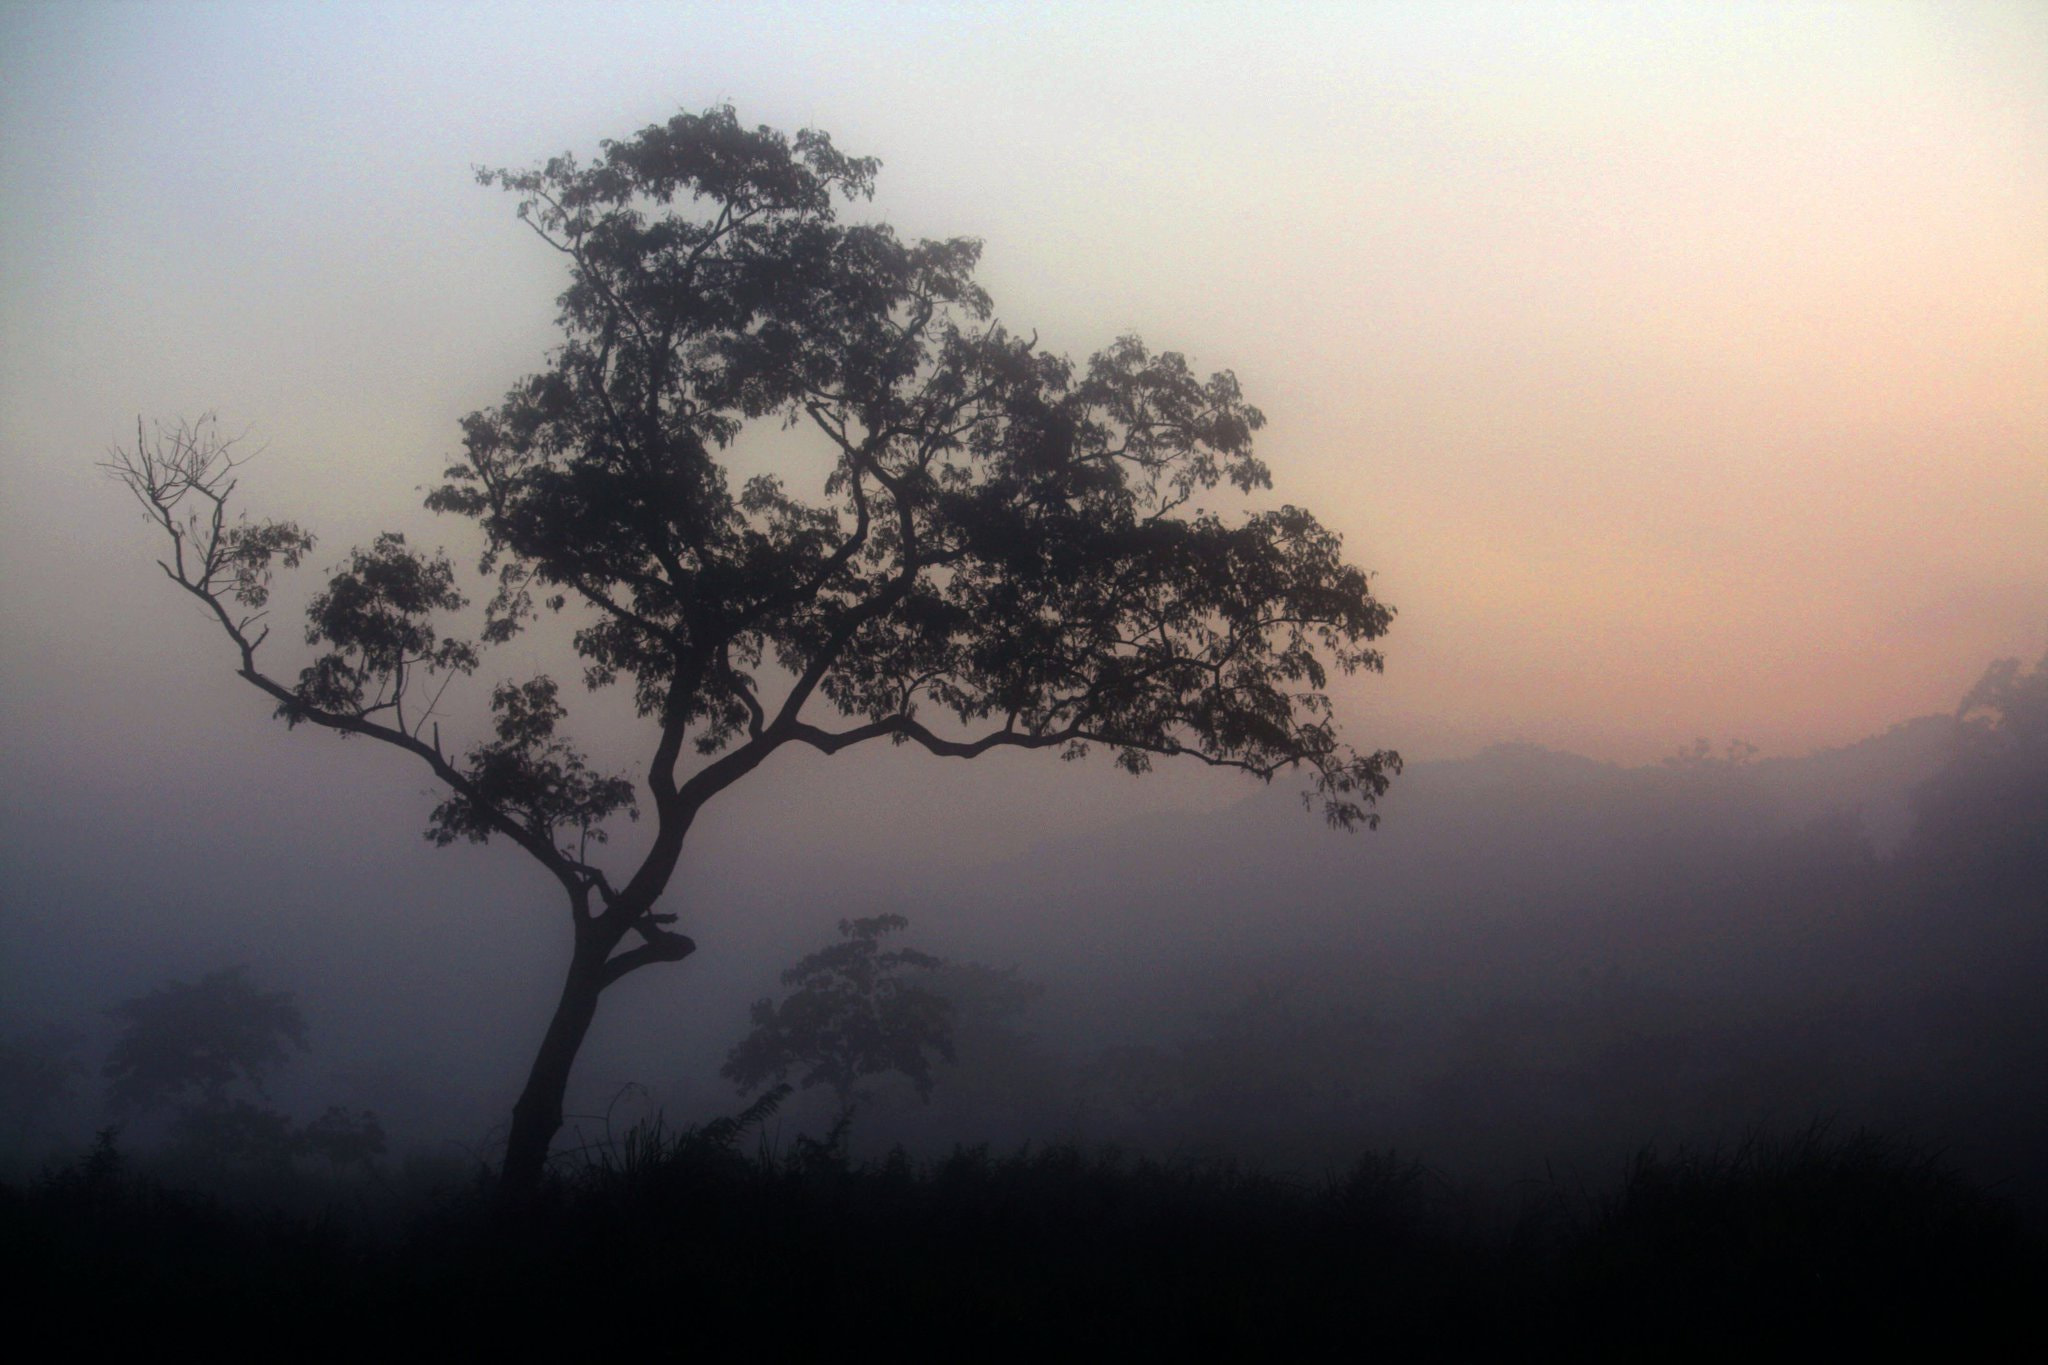 Photograph A tree in the mist by Hrishikesh Arvind Chandanpurkar on 500px